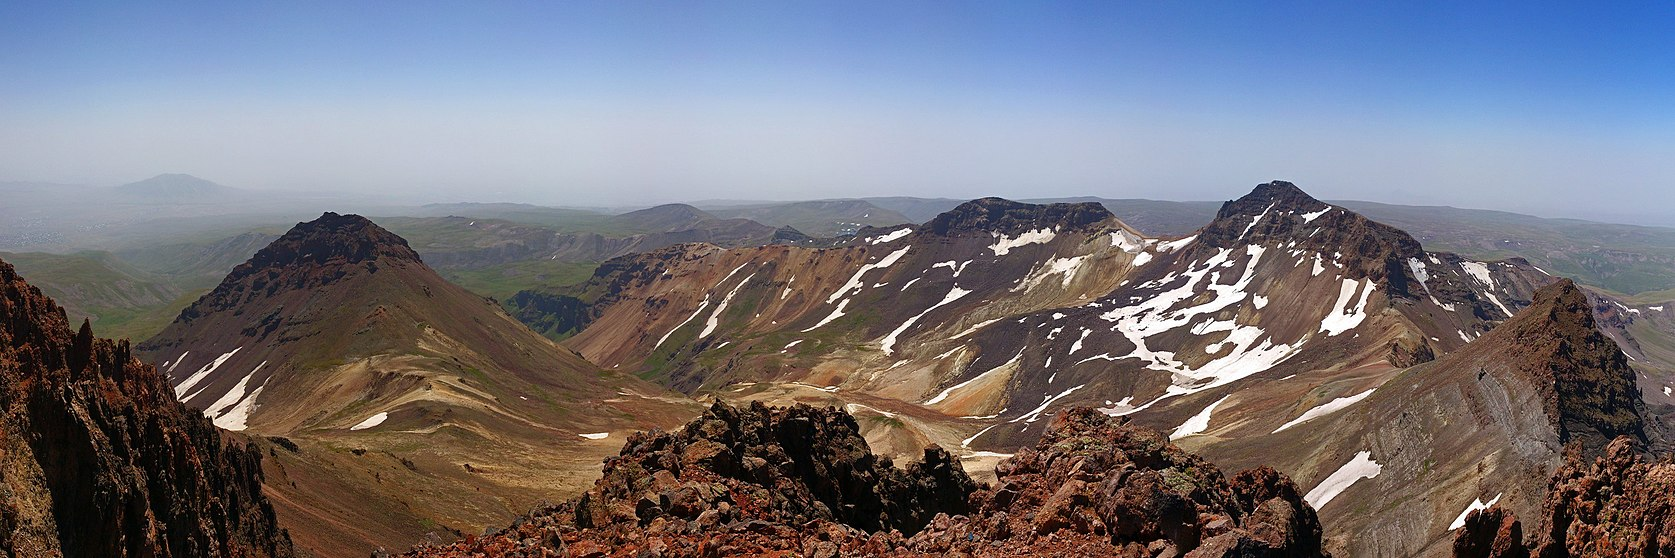 Aragats, East, South ^ West summits, view from North summit, 2012.08.05 - panoramio.jpg